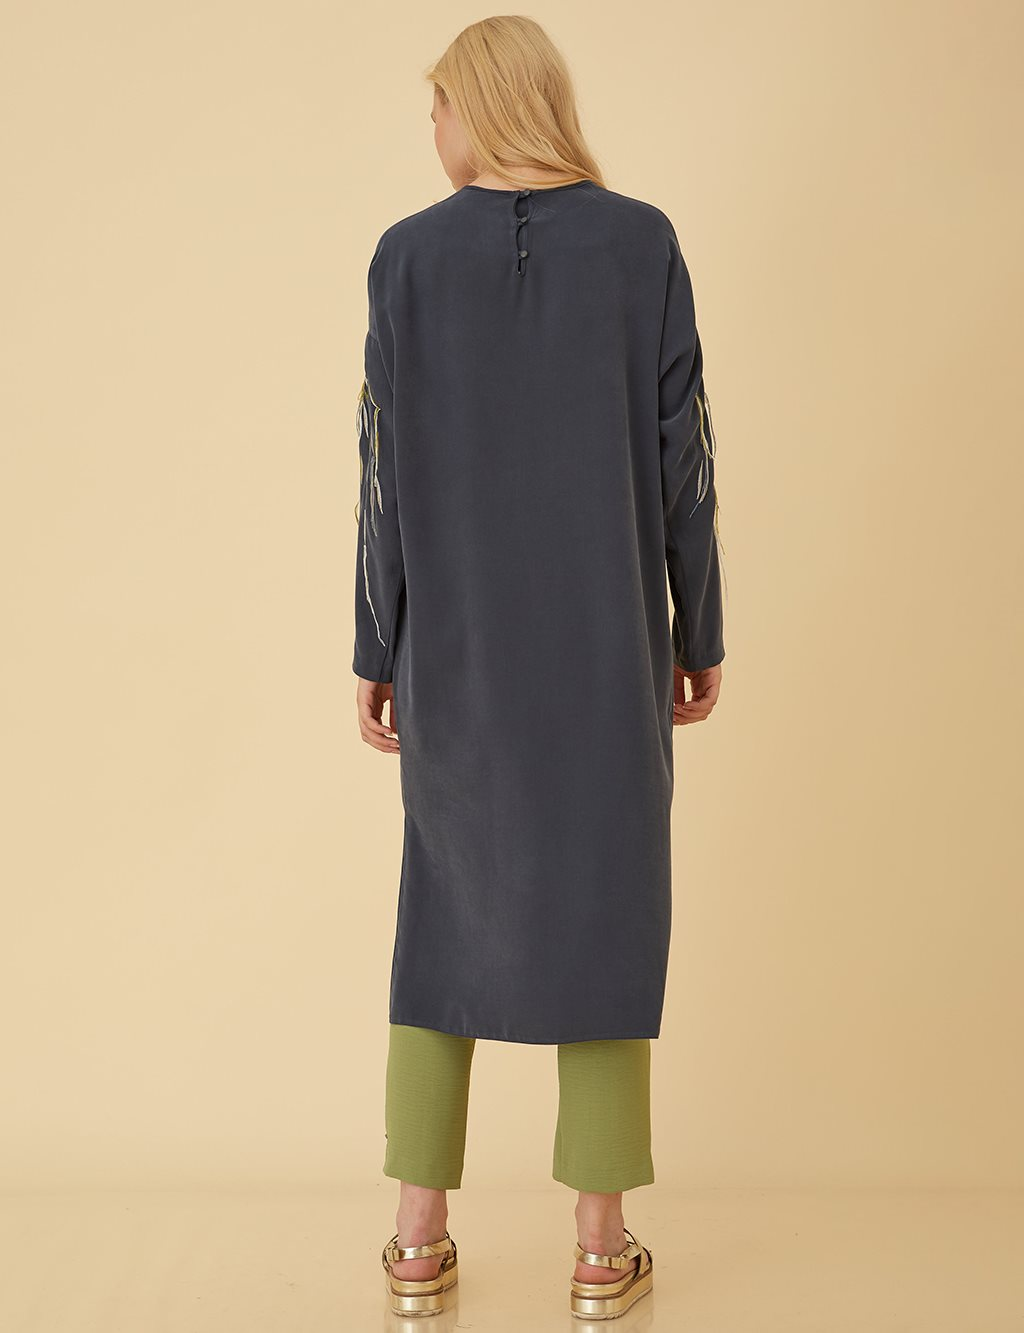 Embroidered Sleeve Tunic B9 21380 Navy